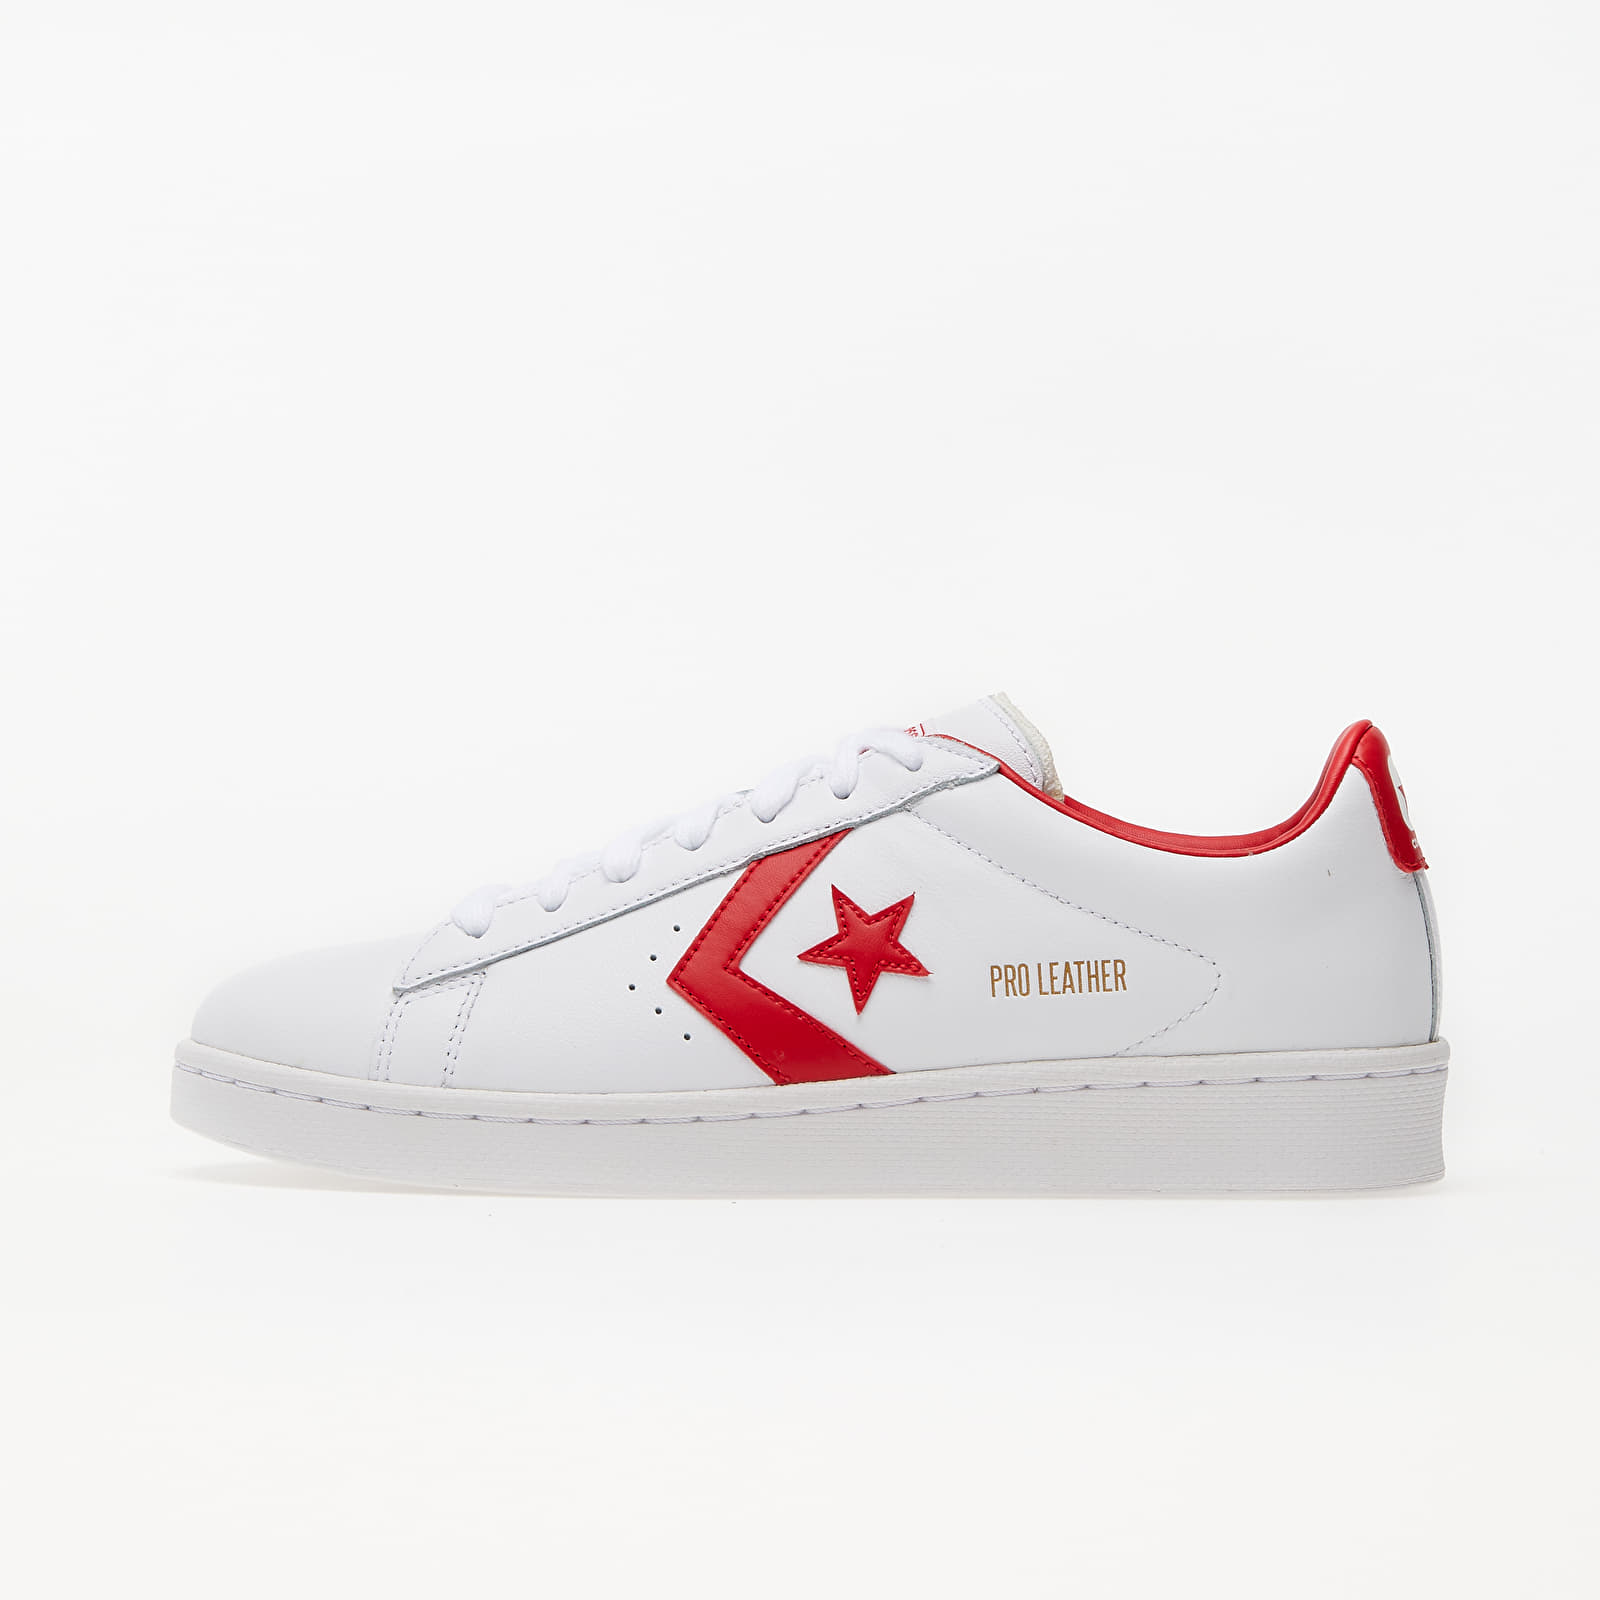 Men's shoes Converse Pro Leather Gold Standard White/ University Red